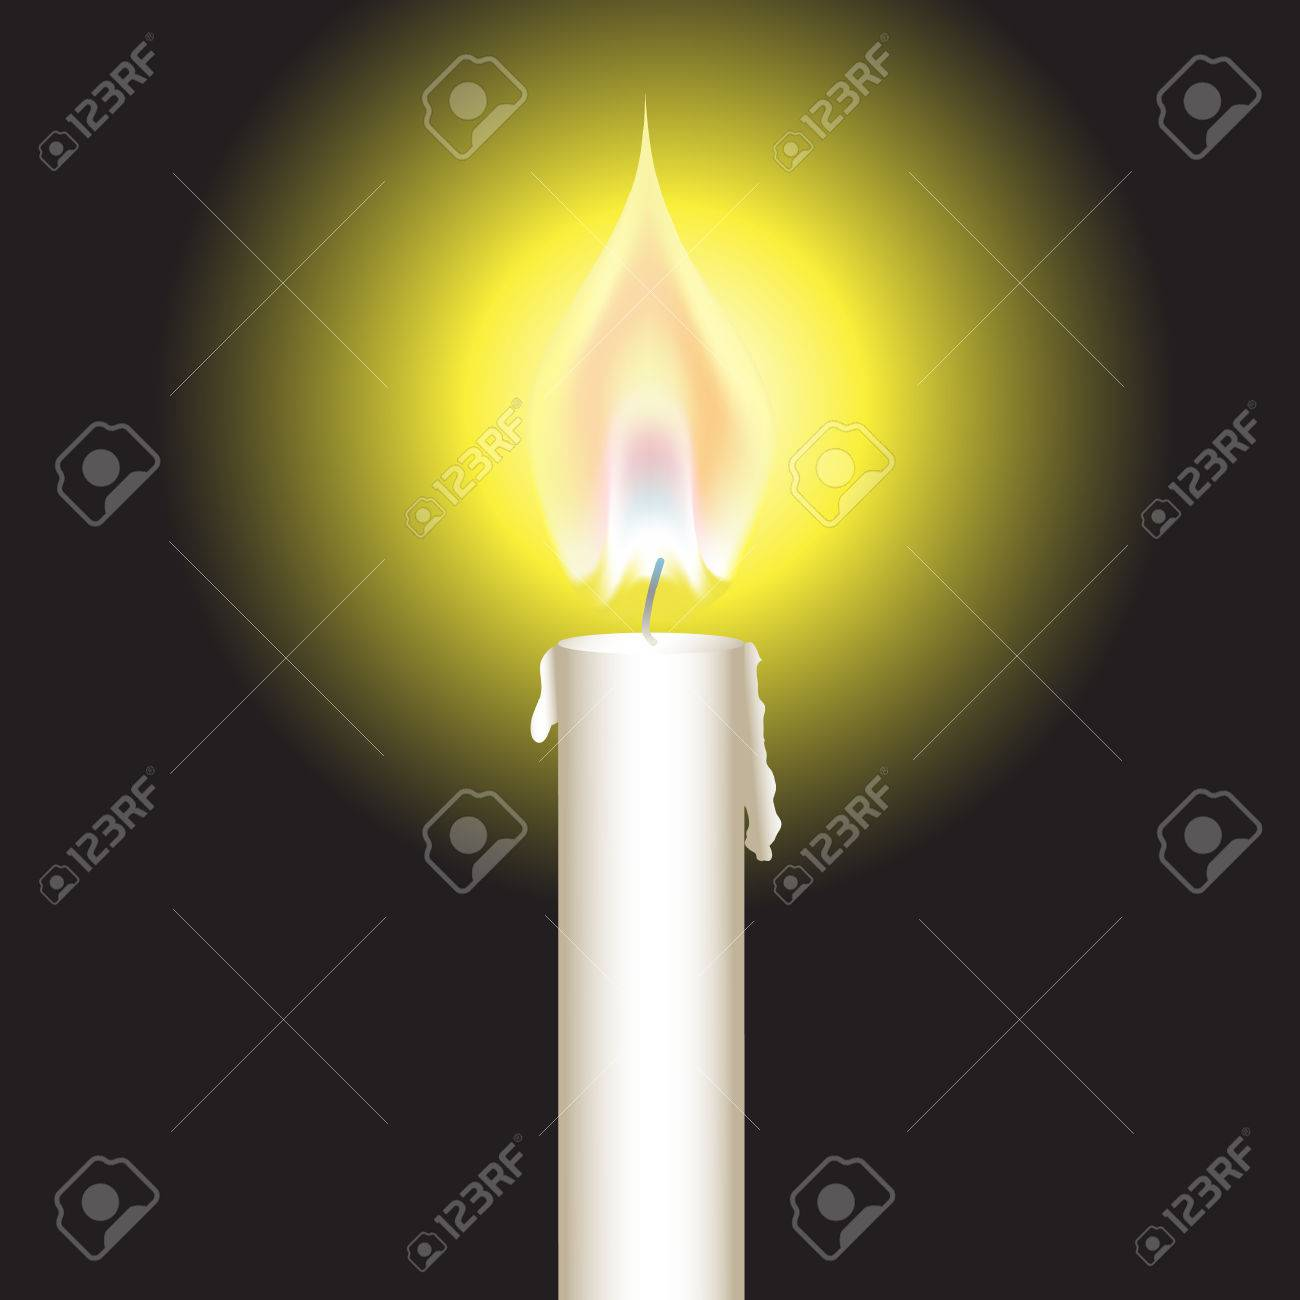 Vector - Illustration of a bright glowing candle with fire or flame Stock Vector - 3771161